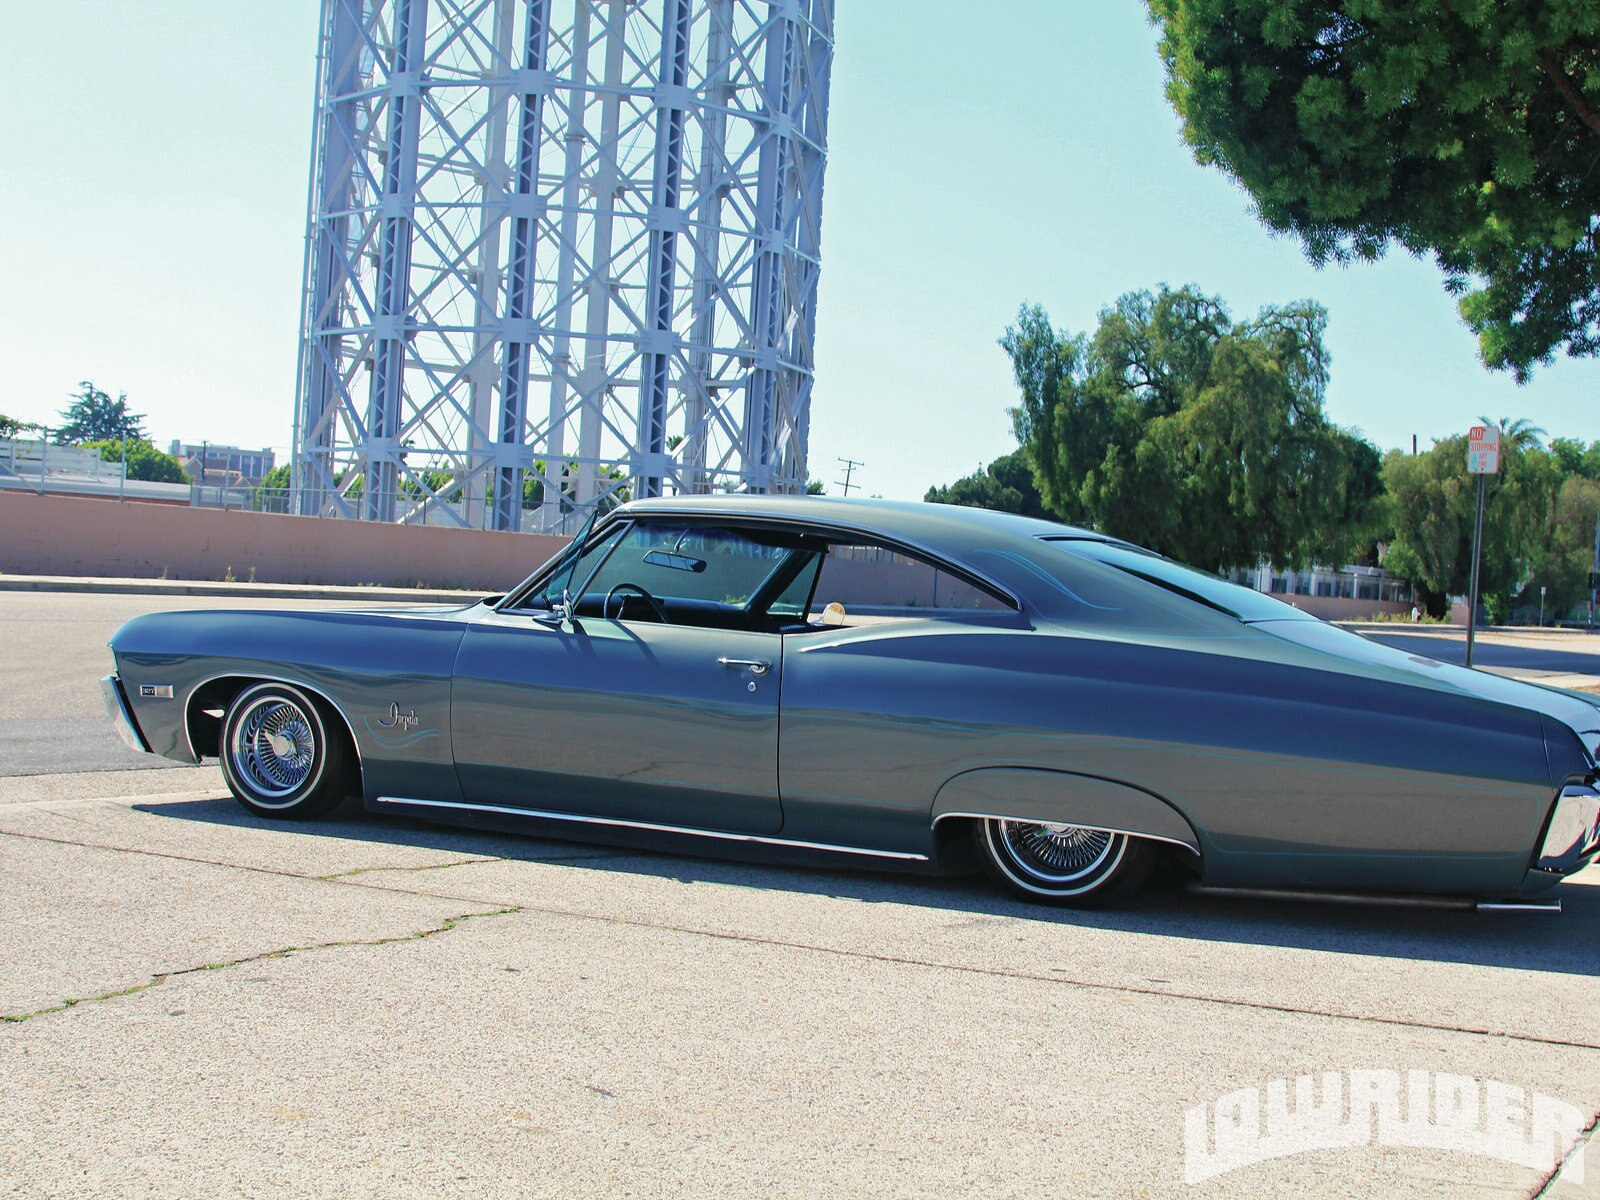 On The Blvd Lowrider Magazine